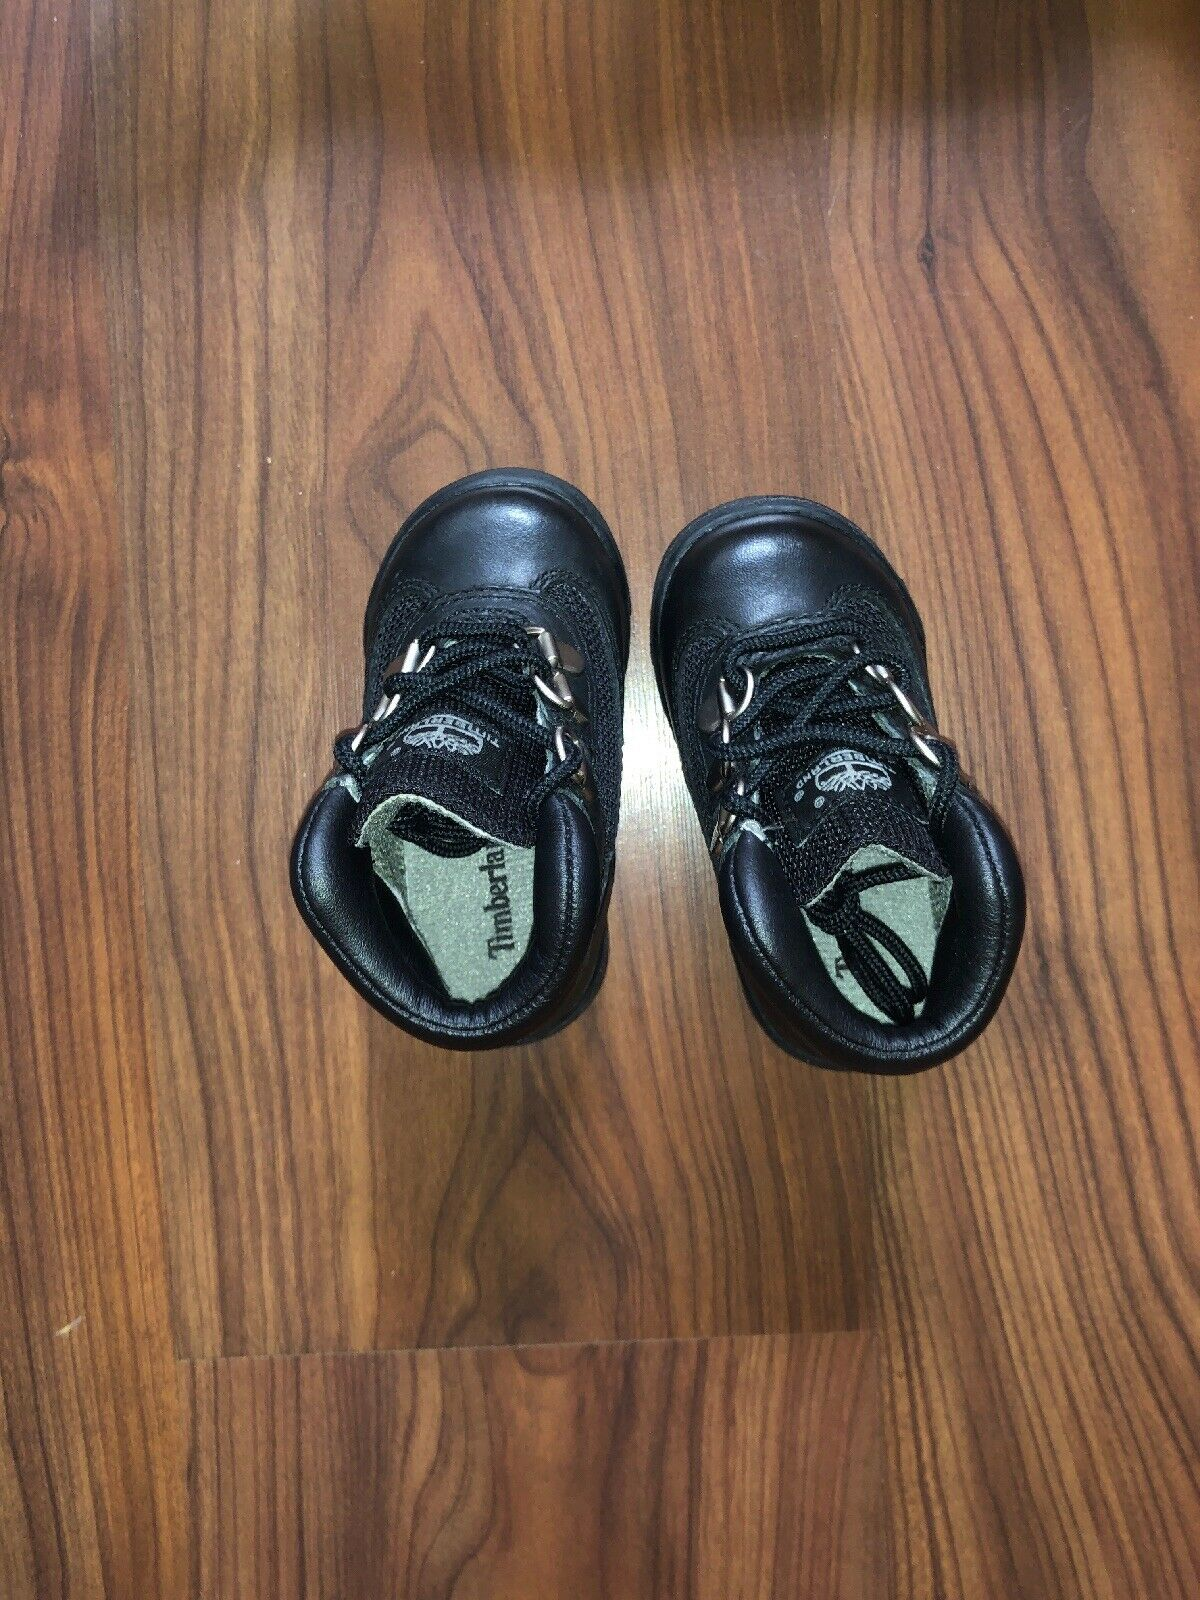 Timberland Toddlers Field Boots - Color Black- Size 5